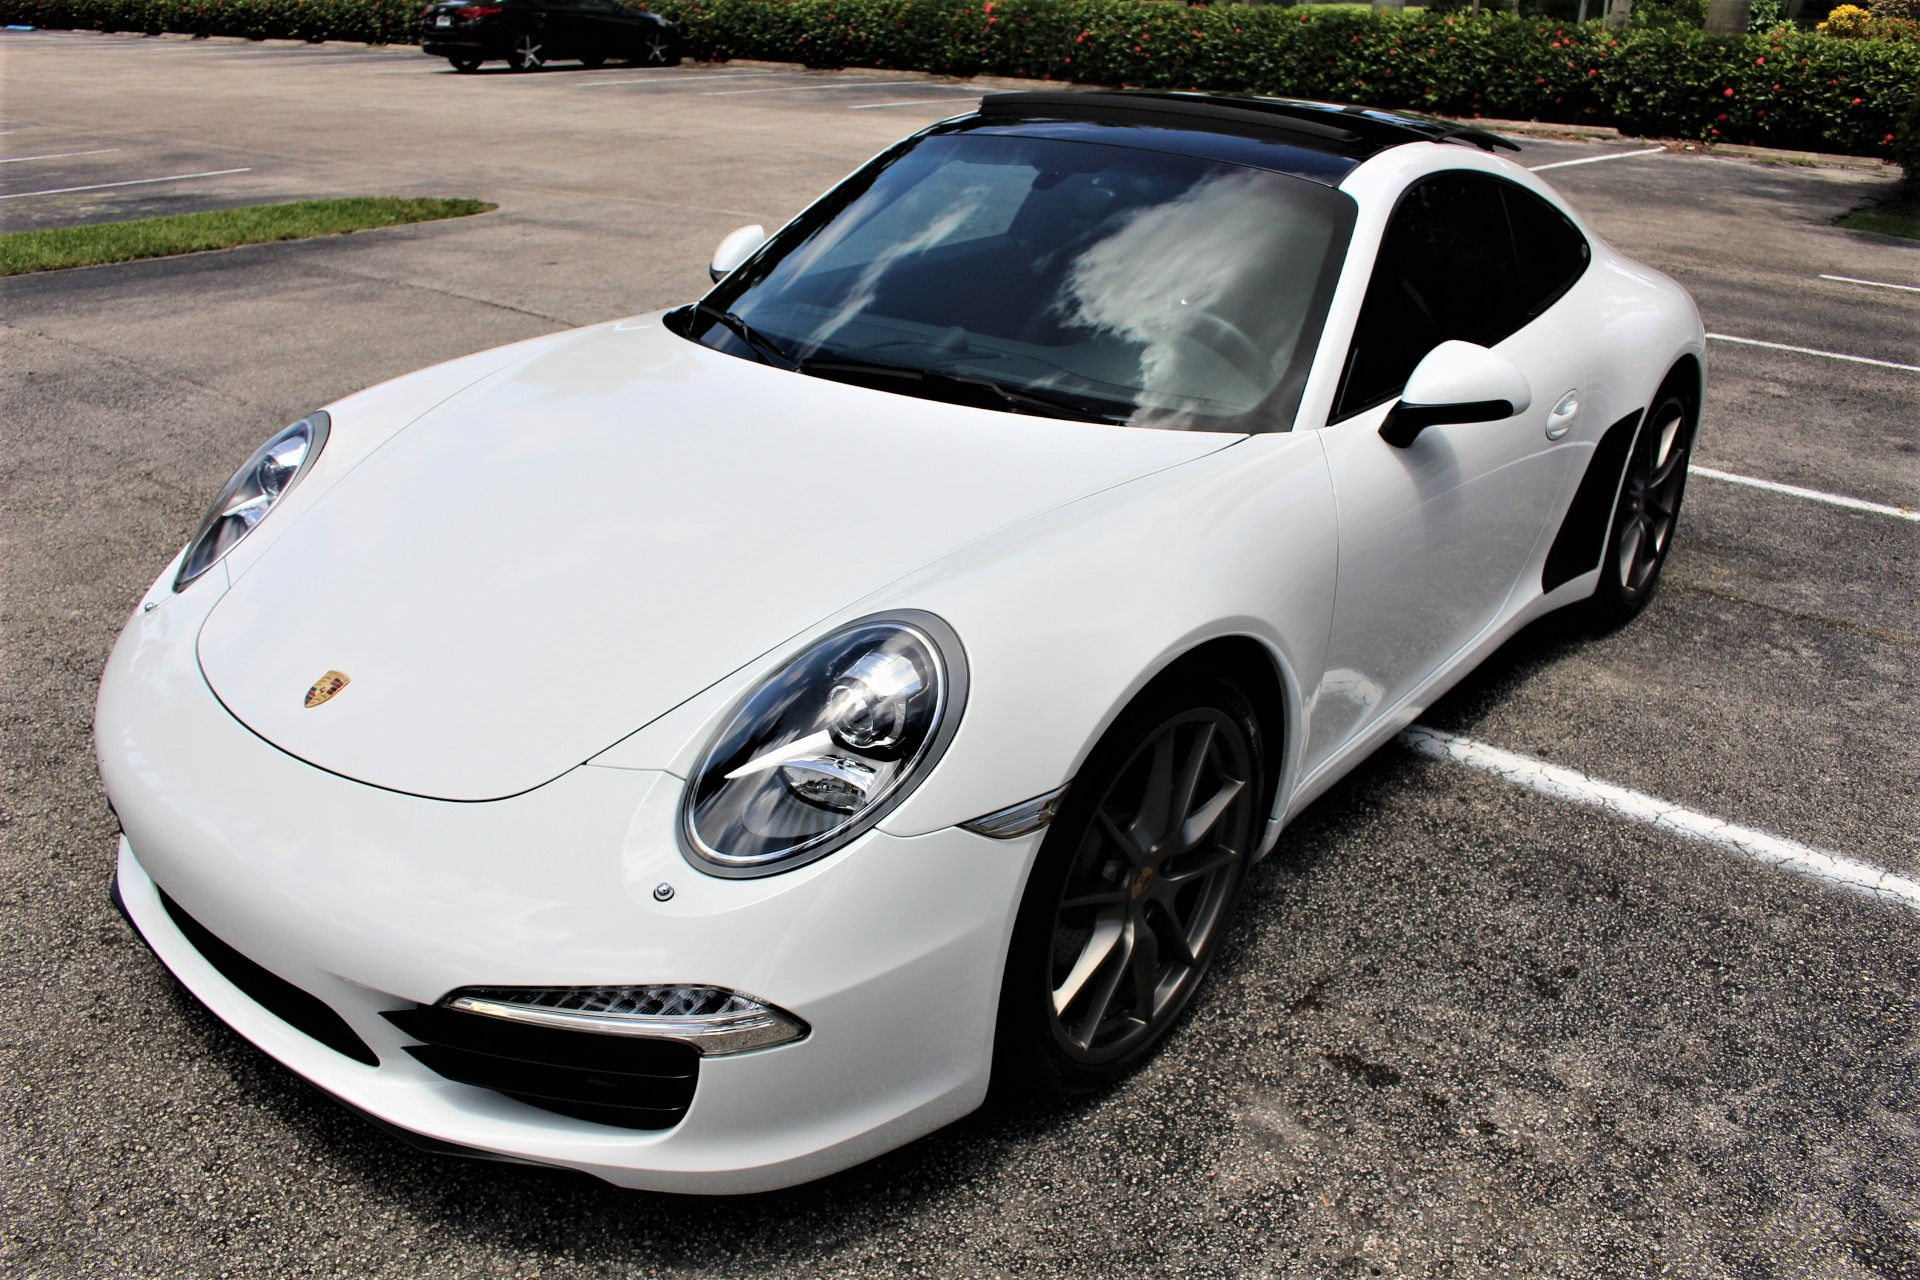 Used 2013 Porsche 911 Carrera for sale Sold at The Gables Sports Cars in Miami FL 33146 4